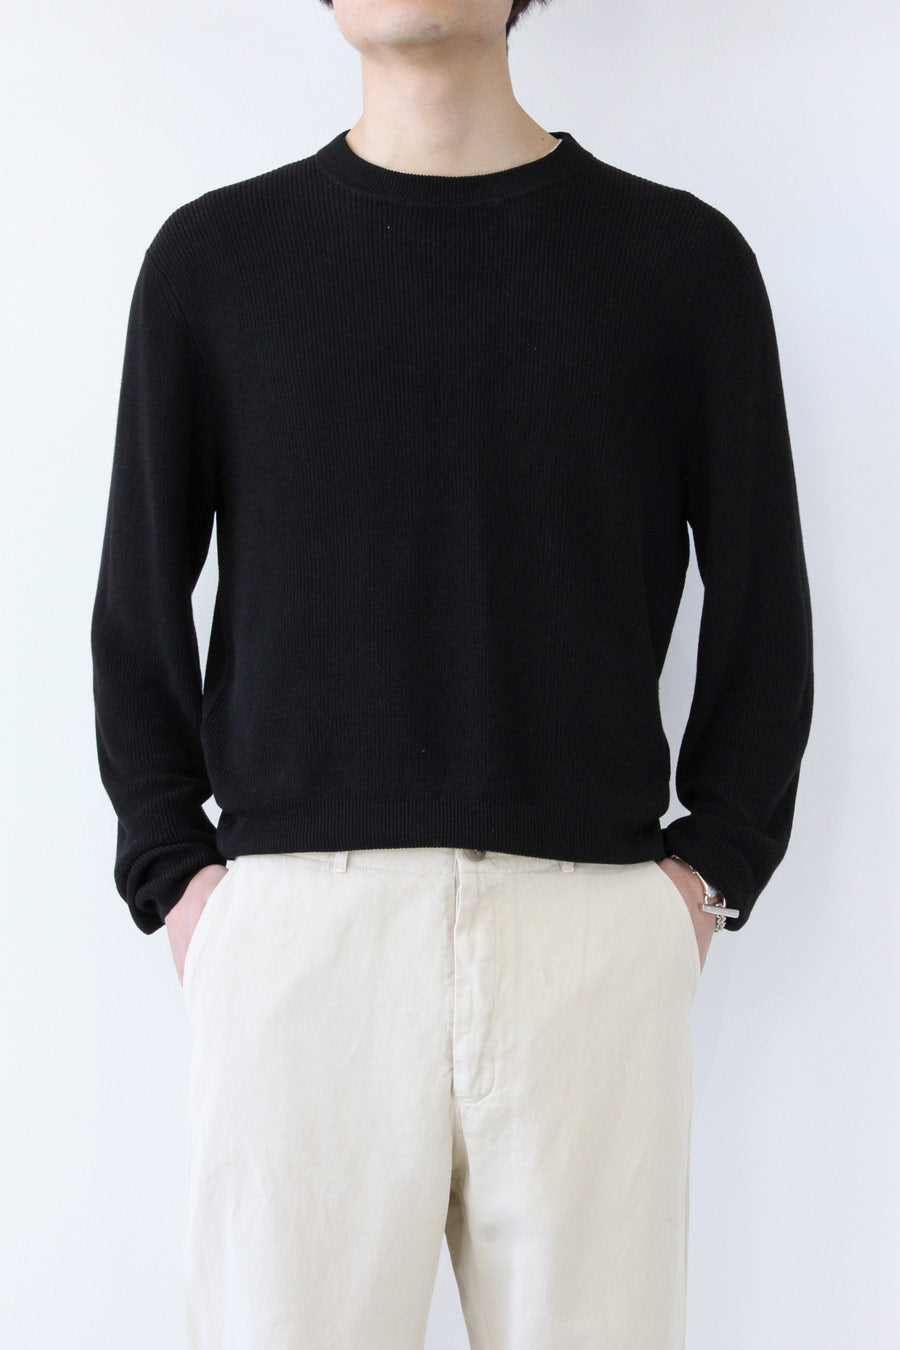 GENTLE SWEATER / BLACK [20%OFF]